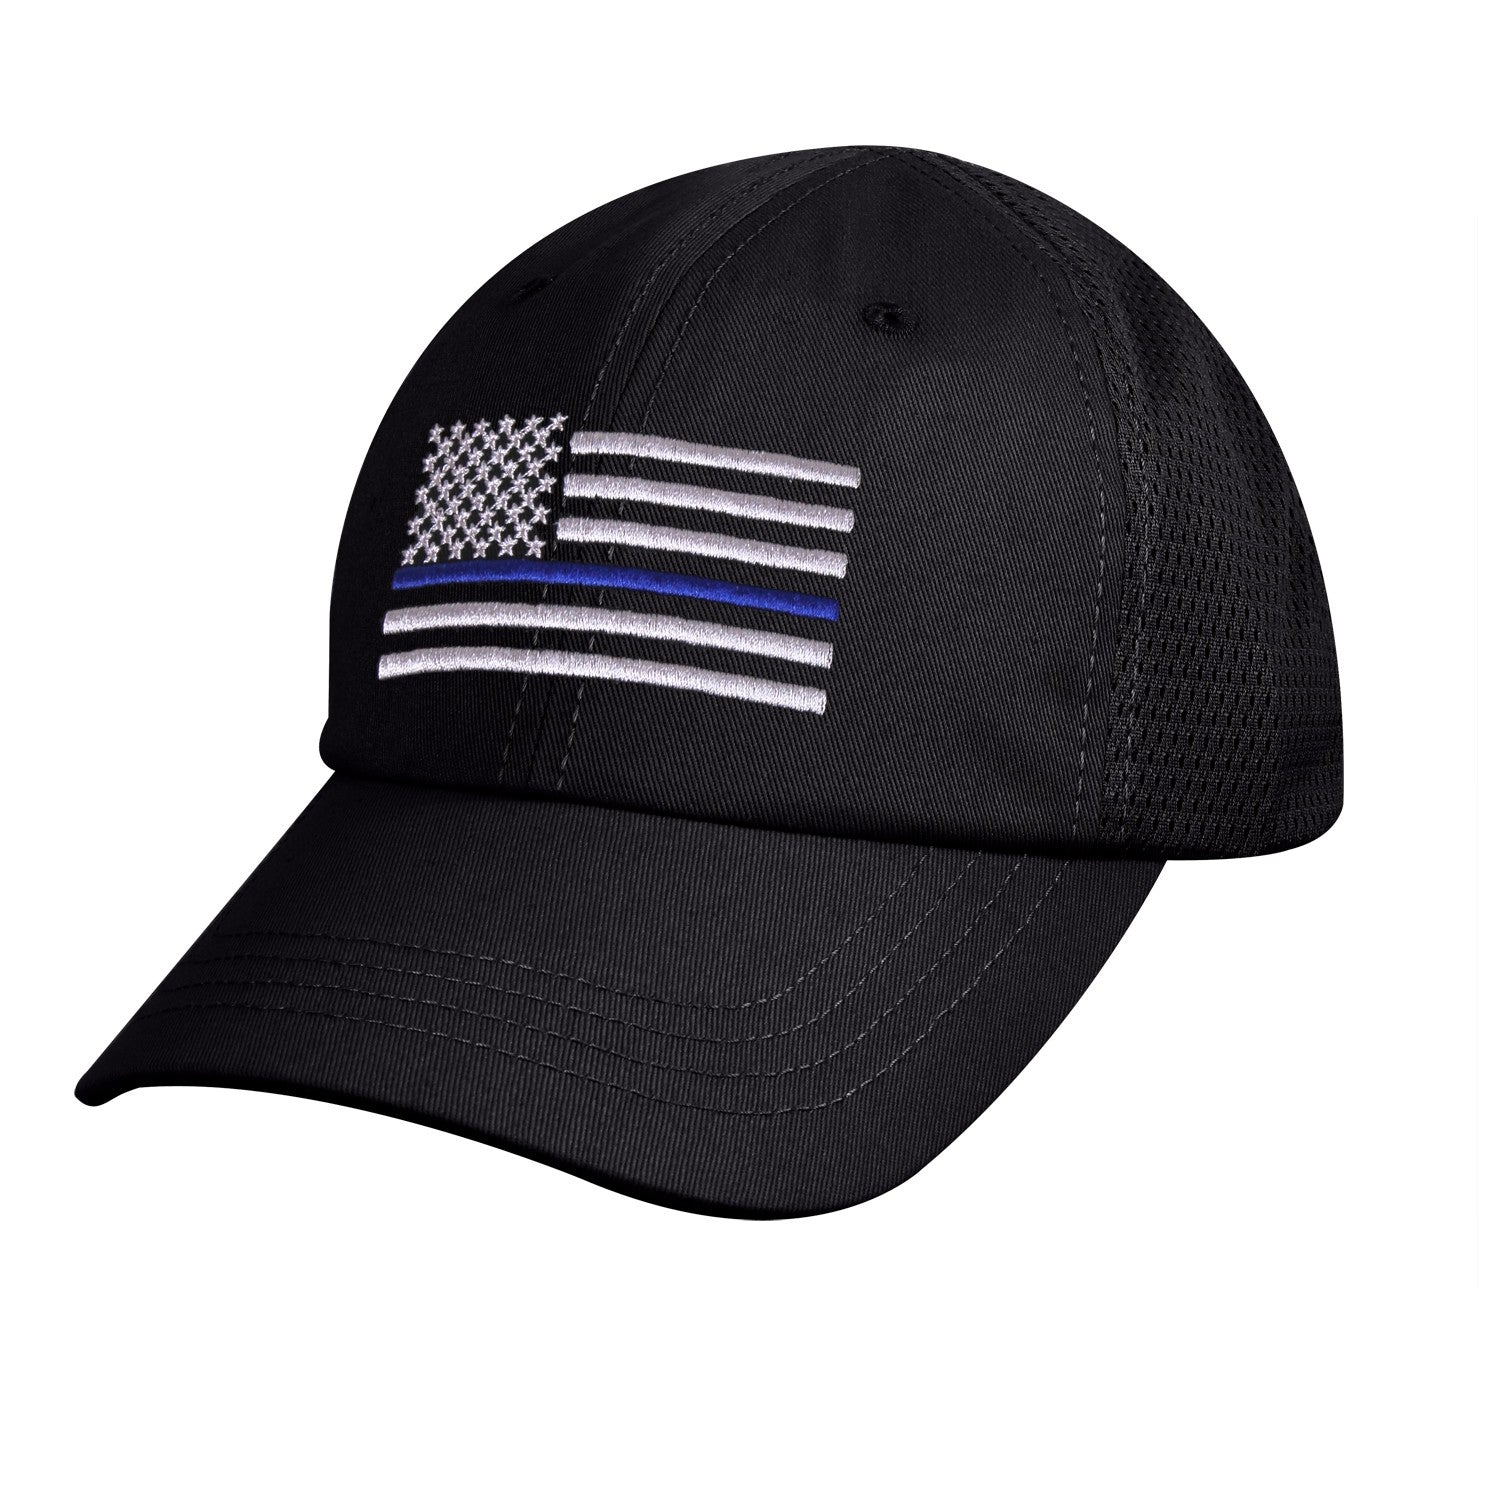 Thin Blue Line Mesh Hat Black